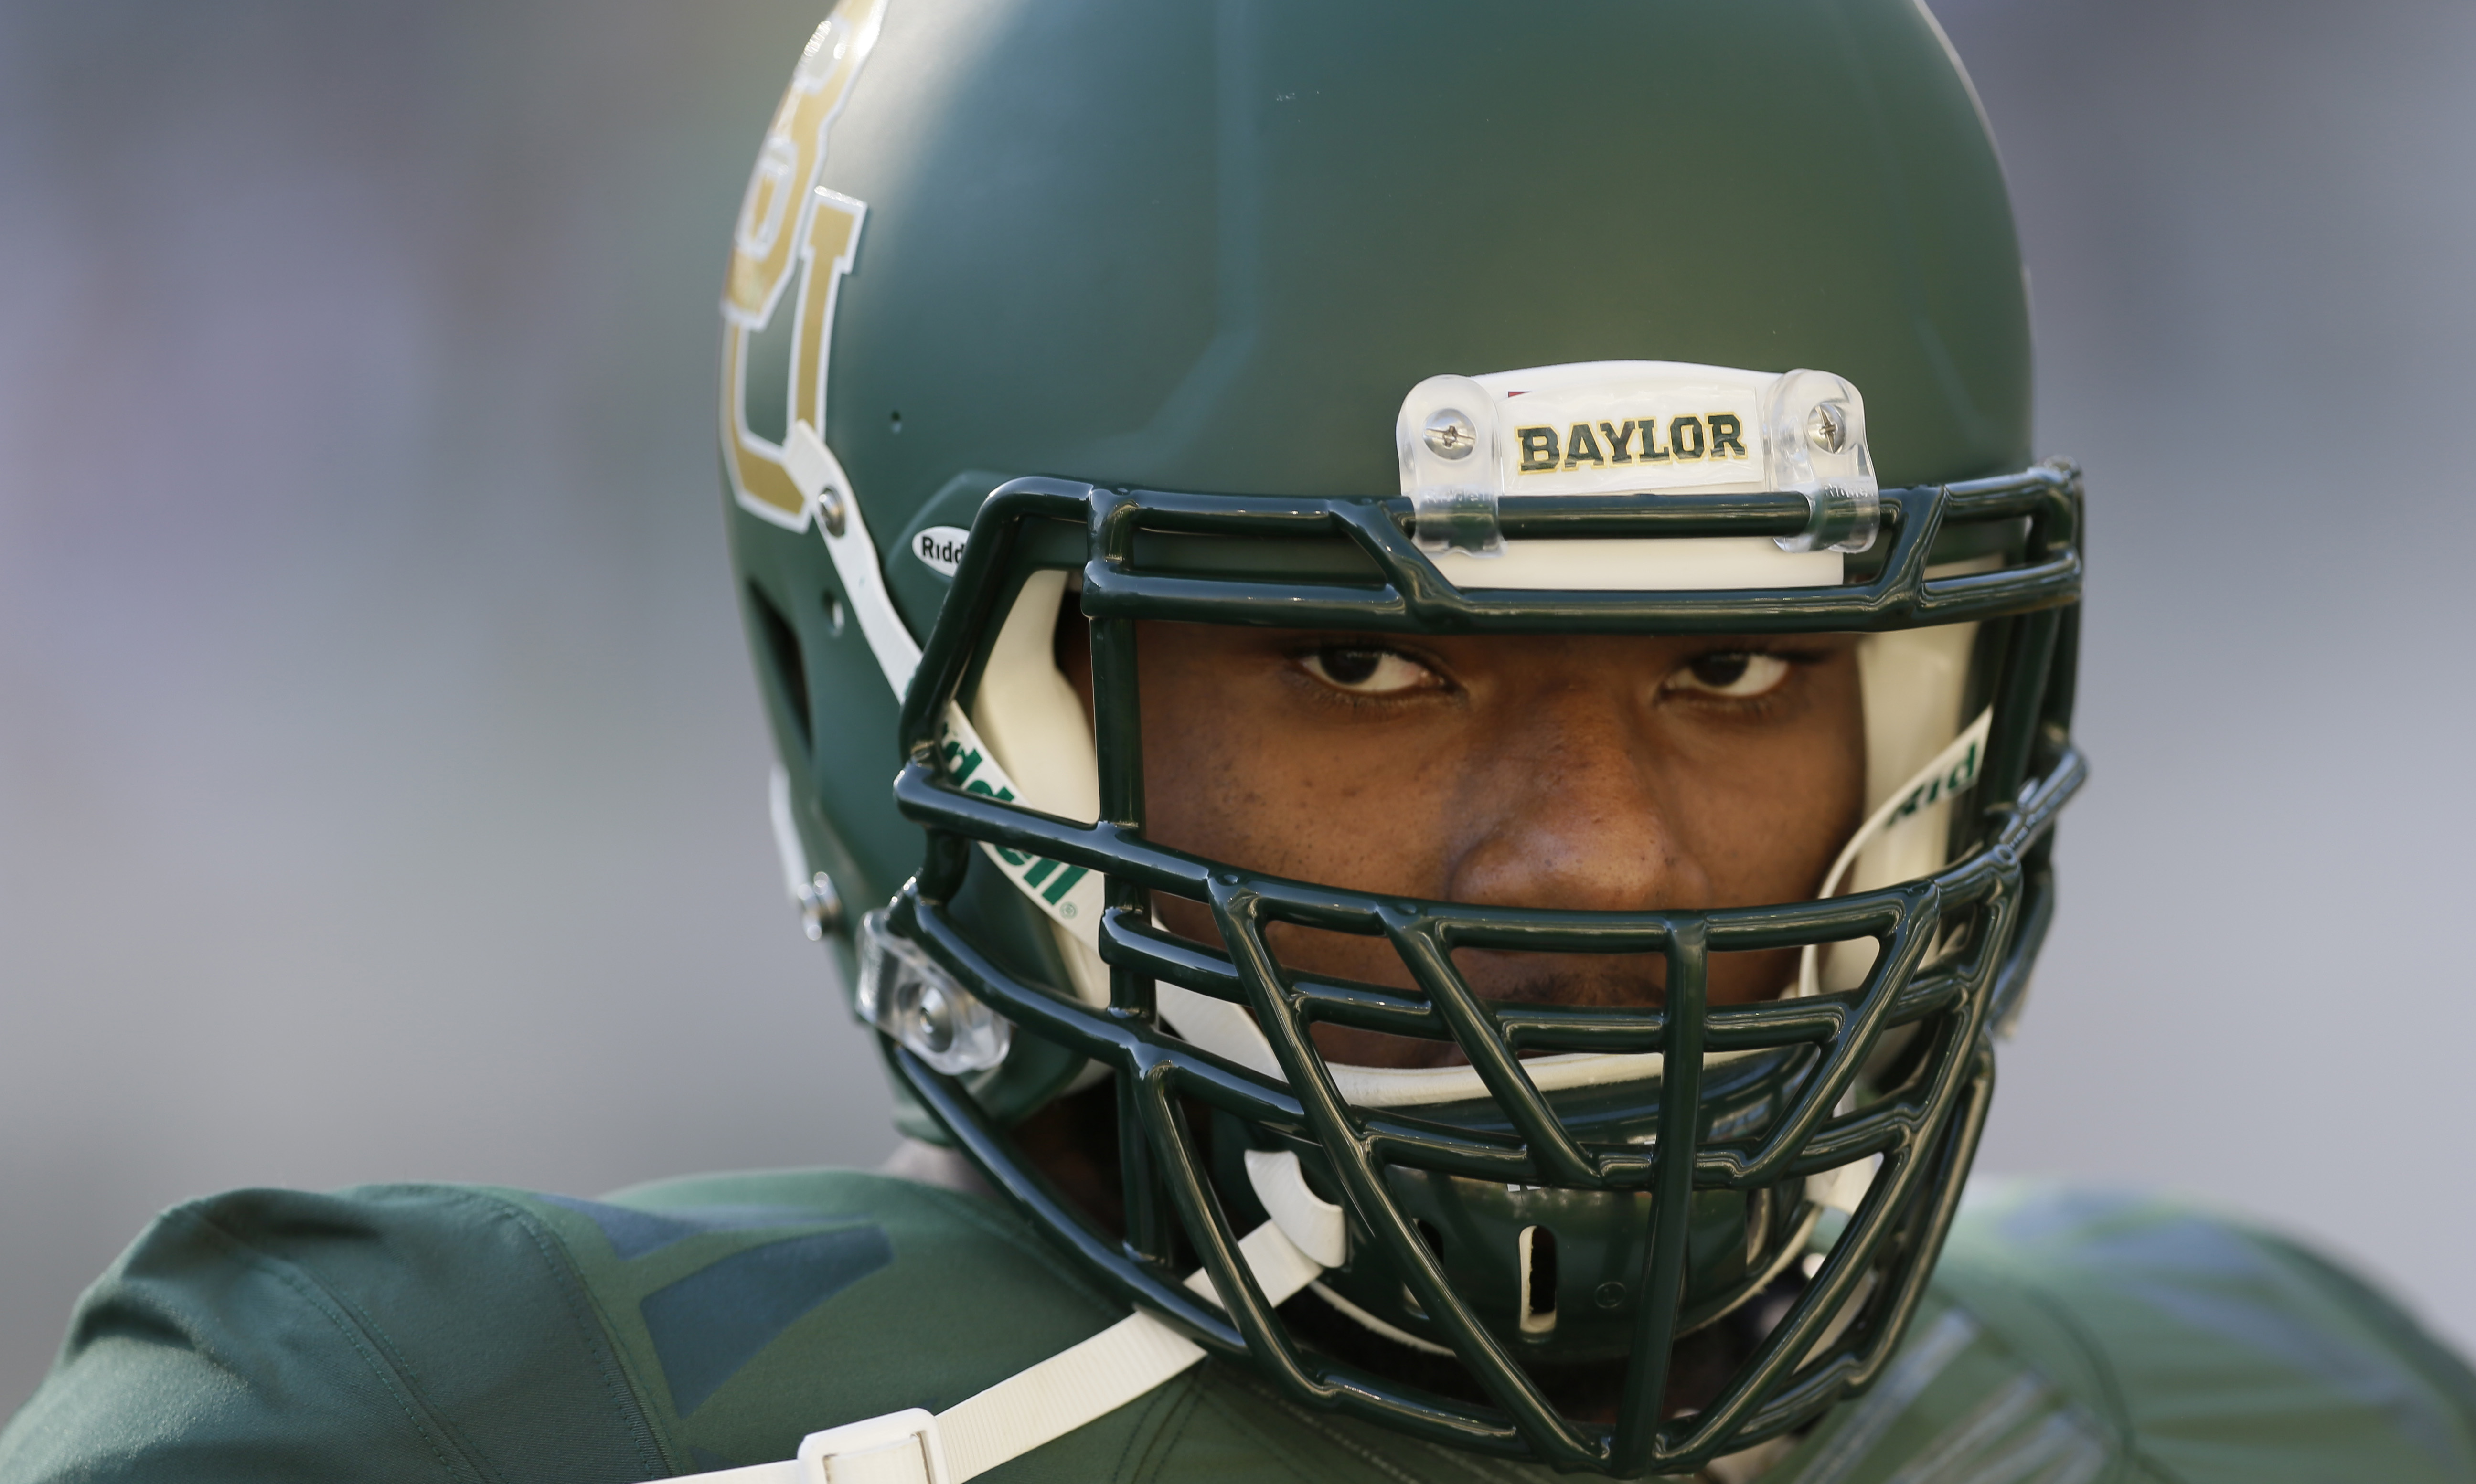 Baylor defensive end Shawn Oakman (2) warms up before an NCAA college football game Saturday, Sept. 12, 2015, in Waco, Texas. (AP Photo/LM Otero)